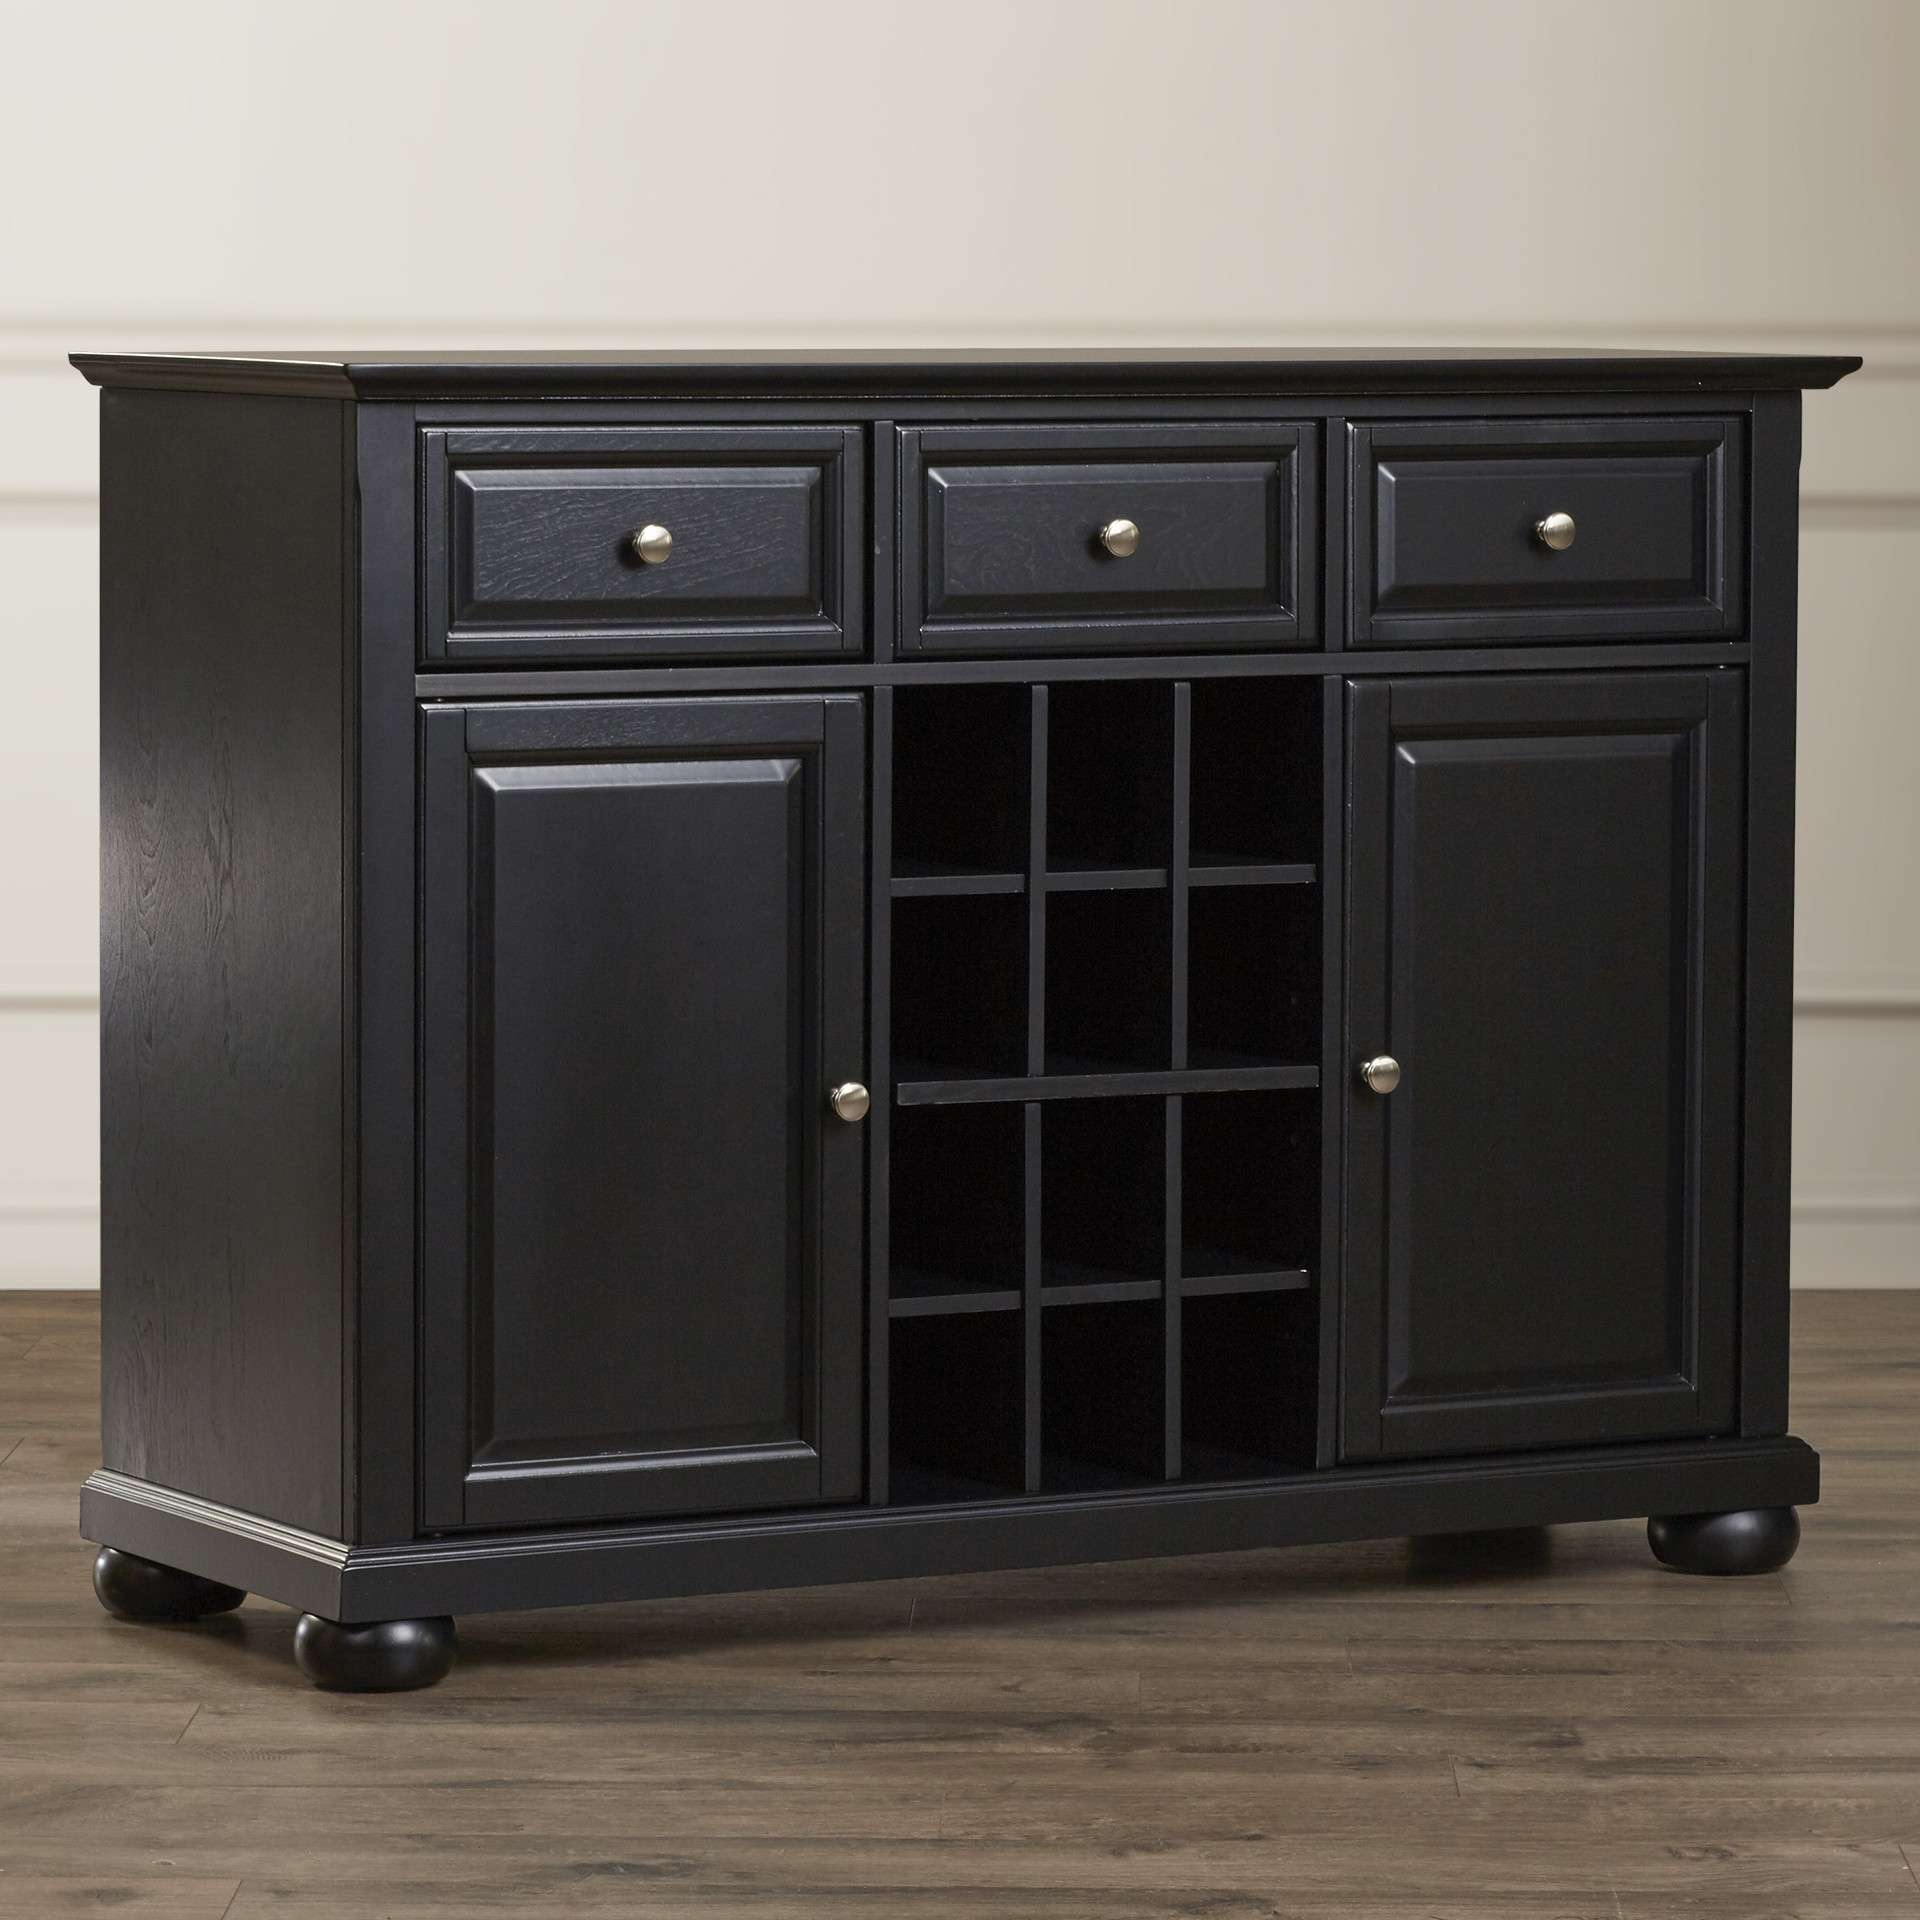 Unique Dining Room Buffets Sideboards – Bjdgjy Intended For Dining Room Buffets Sideboards (Gallery 2 of 20)